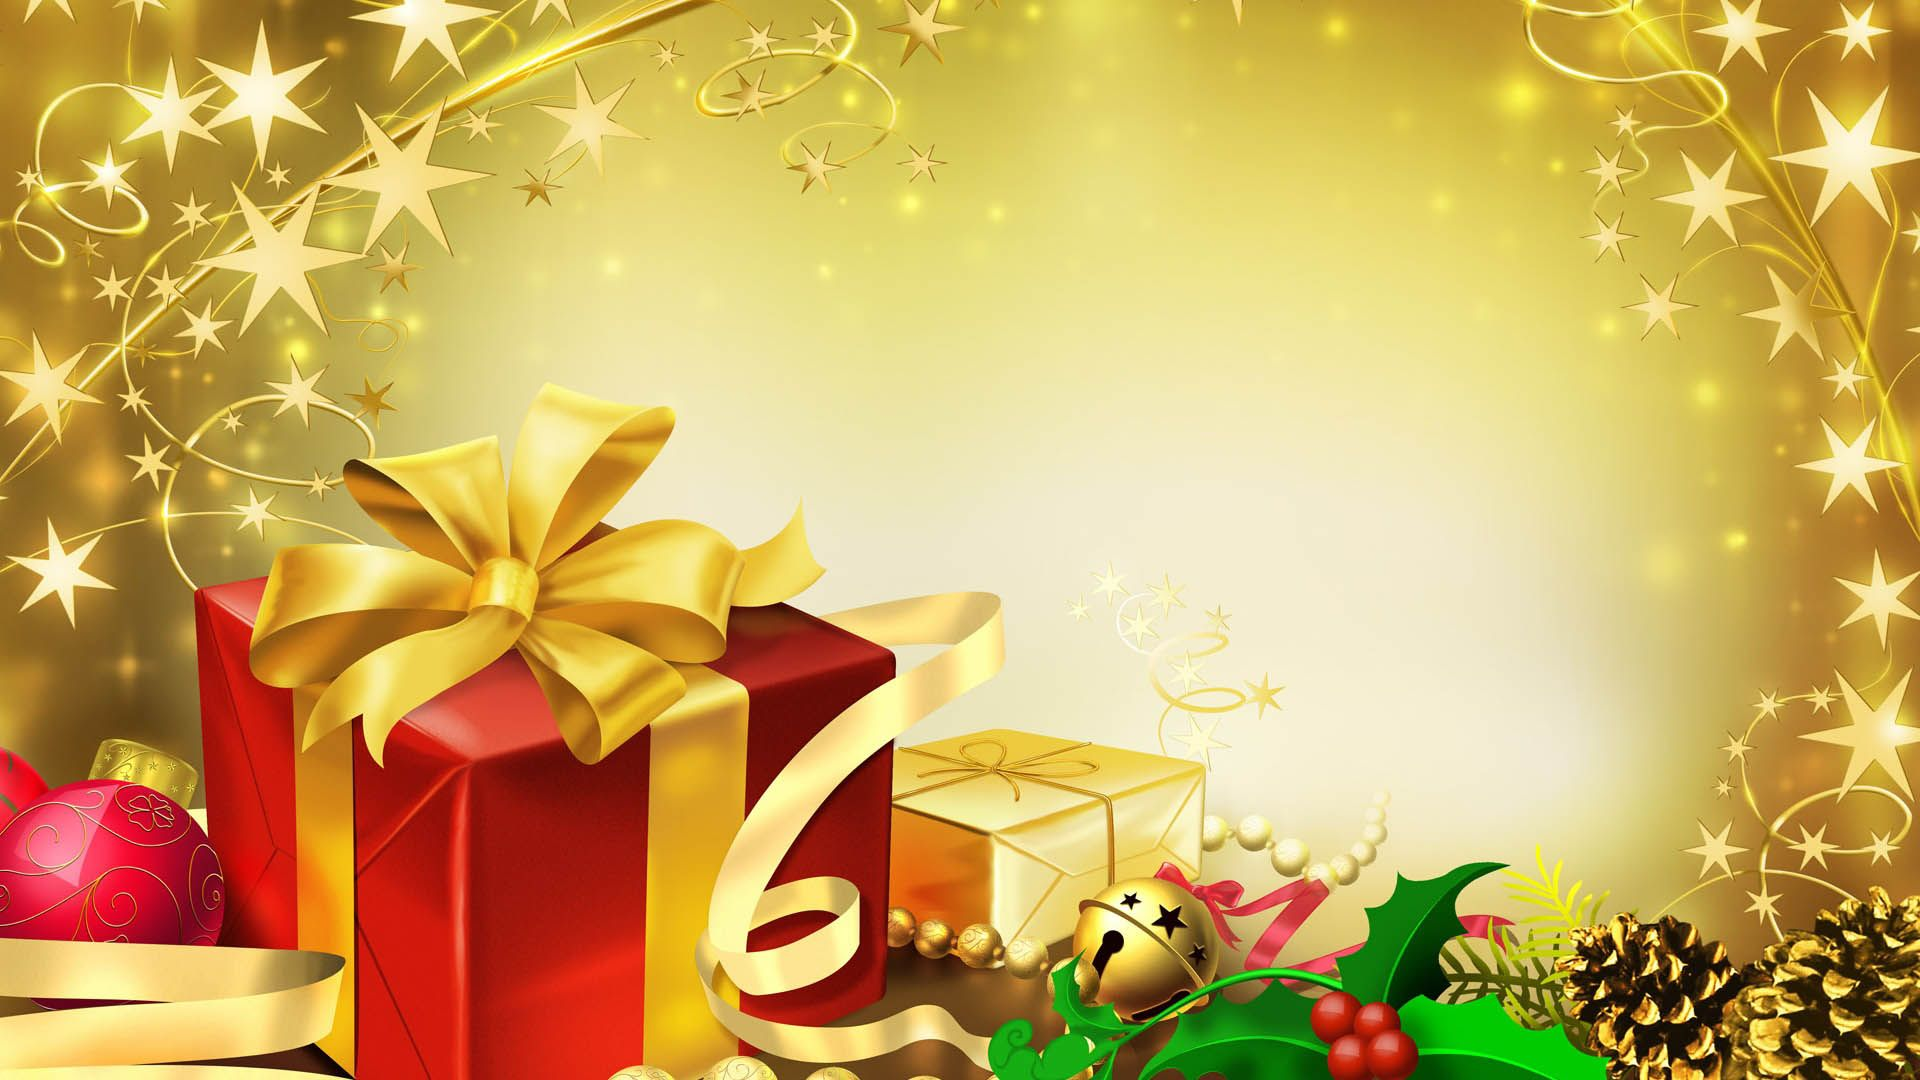 Christmas cards hd wallpapers 4 christmas cards hd wallpapers christmas cards hd wallpapers 4 kristyandbryce Gallery